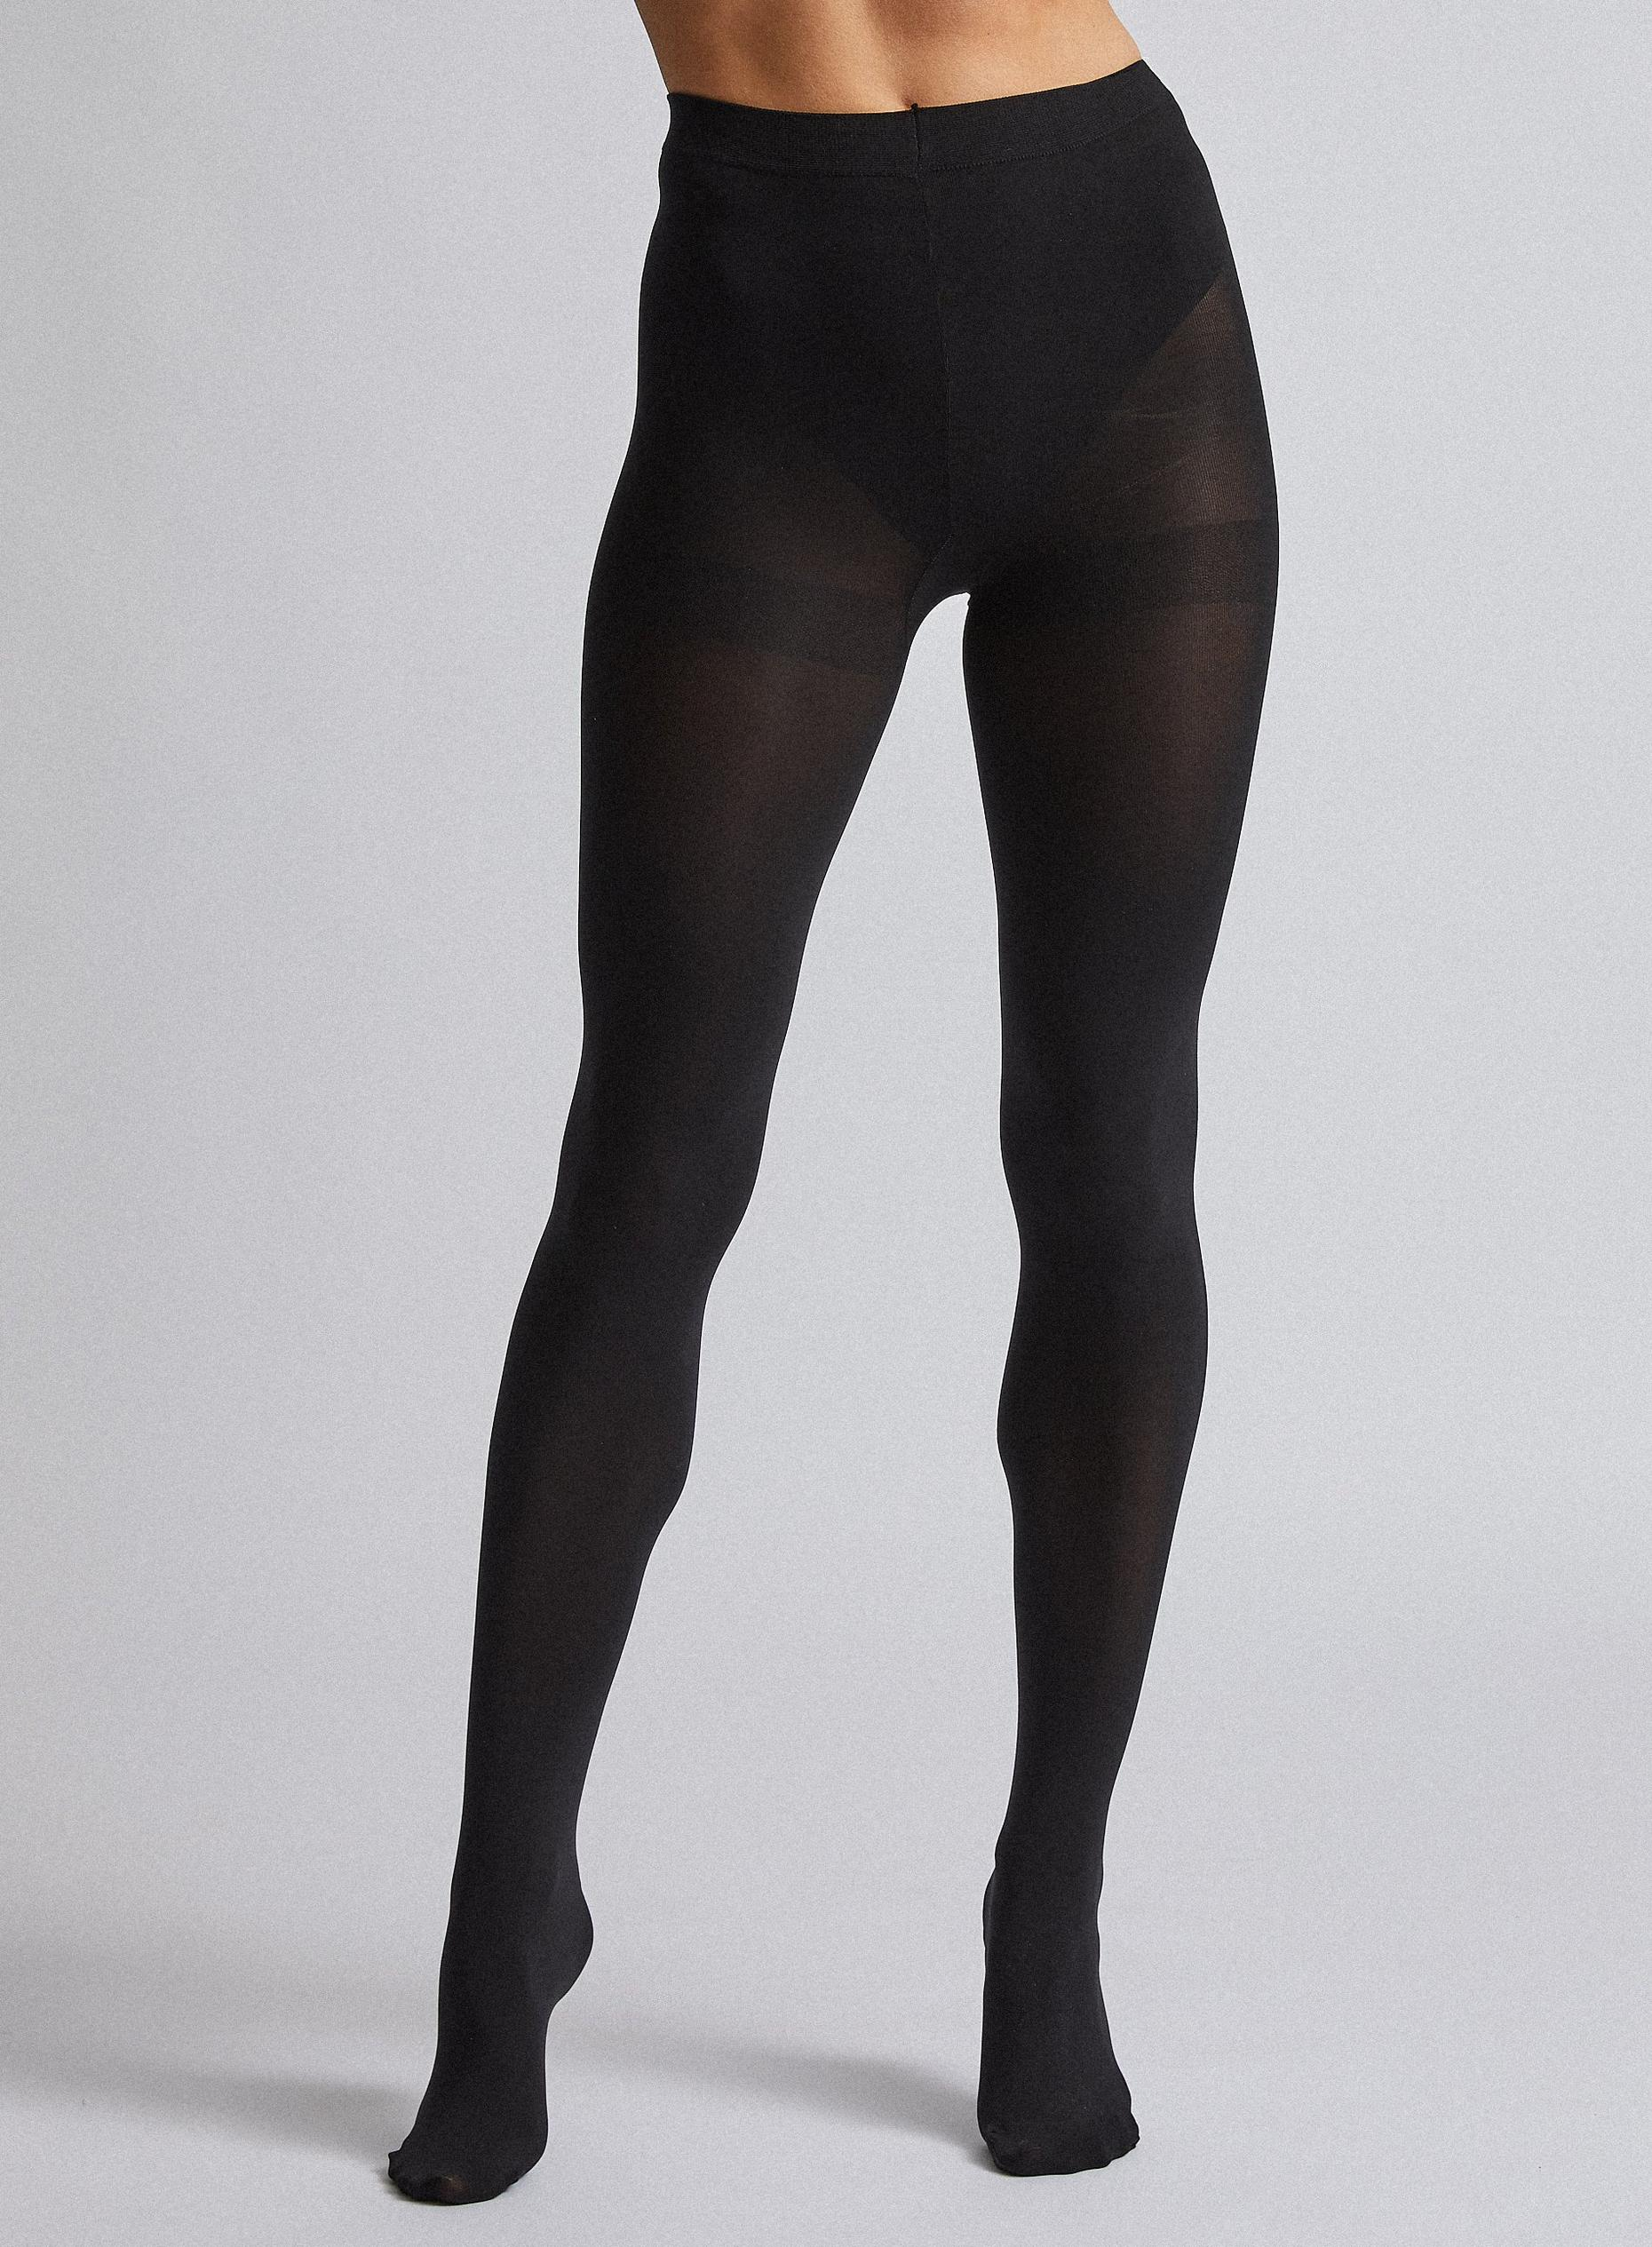 Black 100 Denier Two Pack Tights